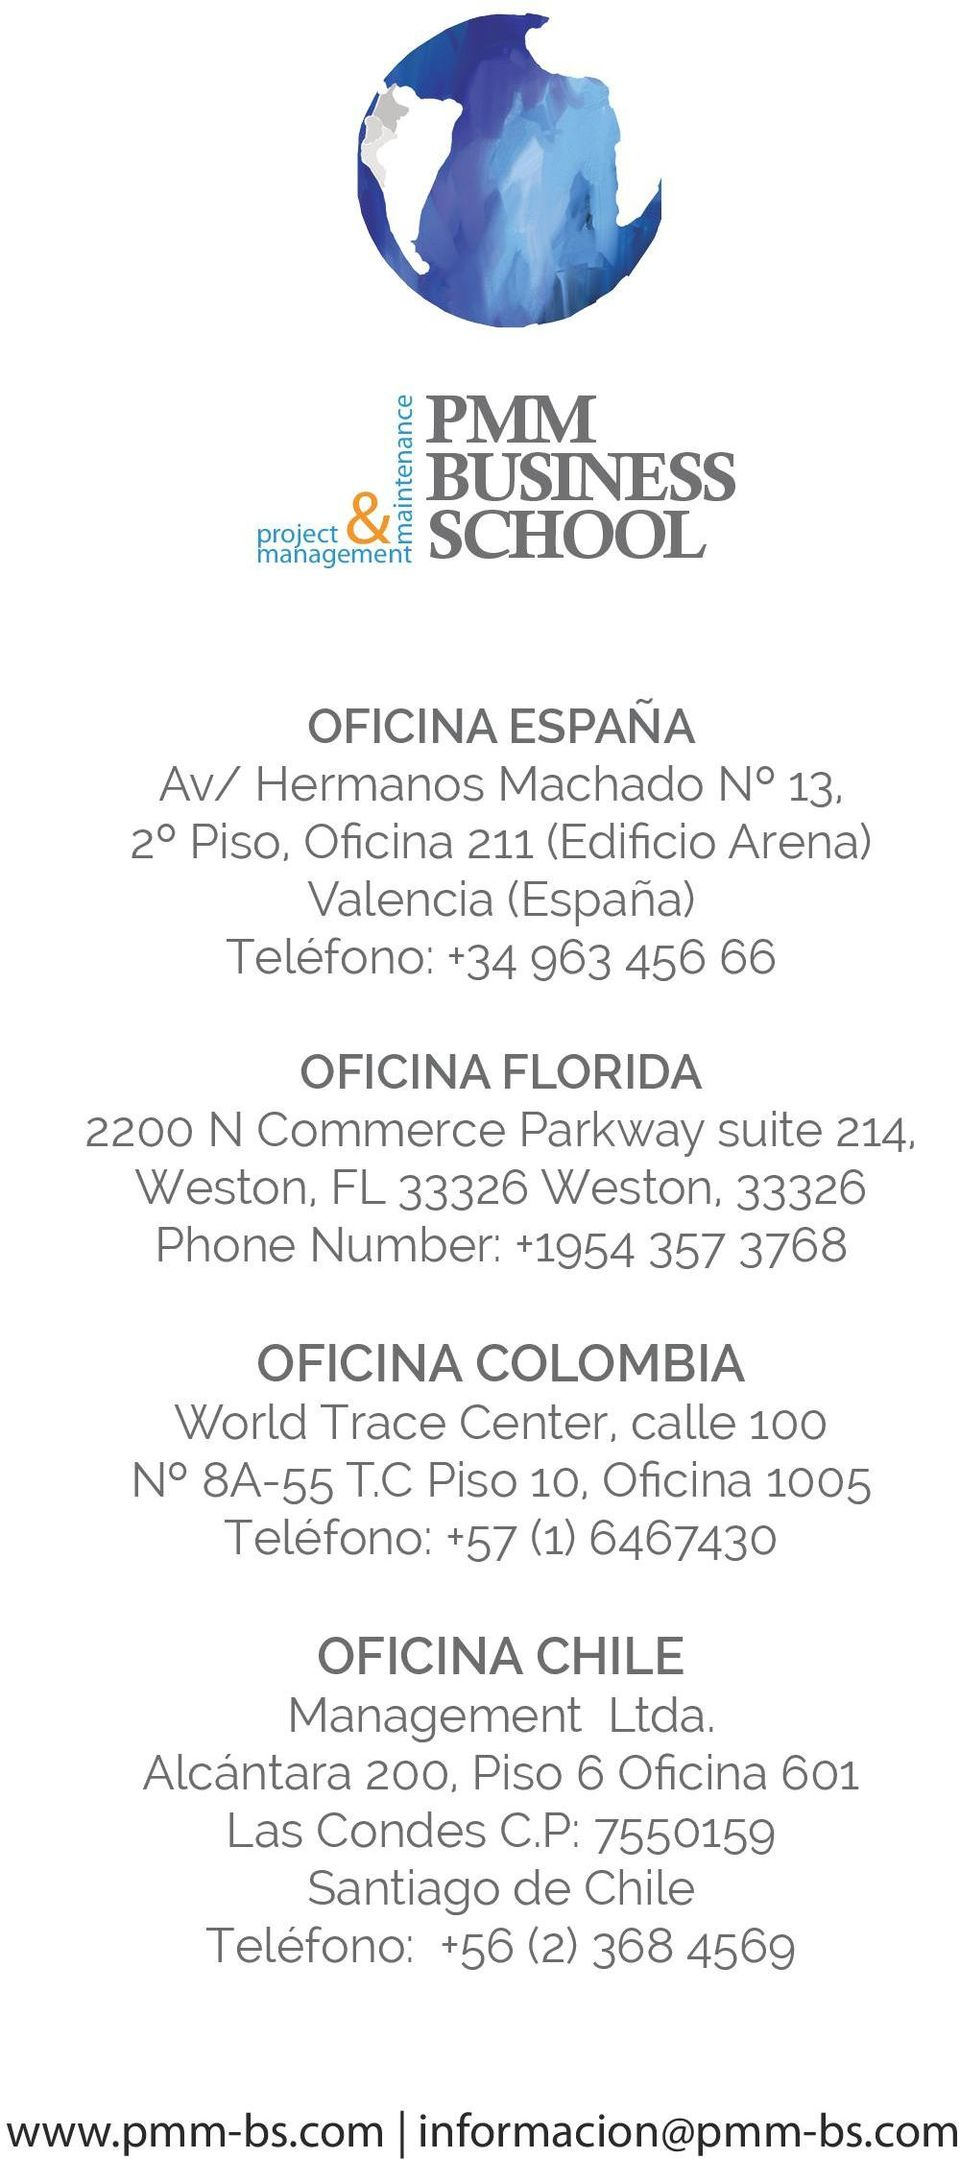 Phone Number: +1954 357 3768 OFICINA COLOMBIA World Trace Center, calle 100 Nº 8A-55 T.